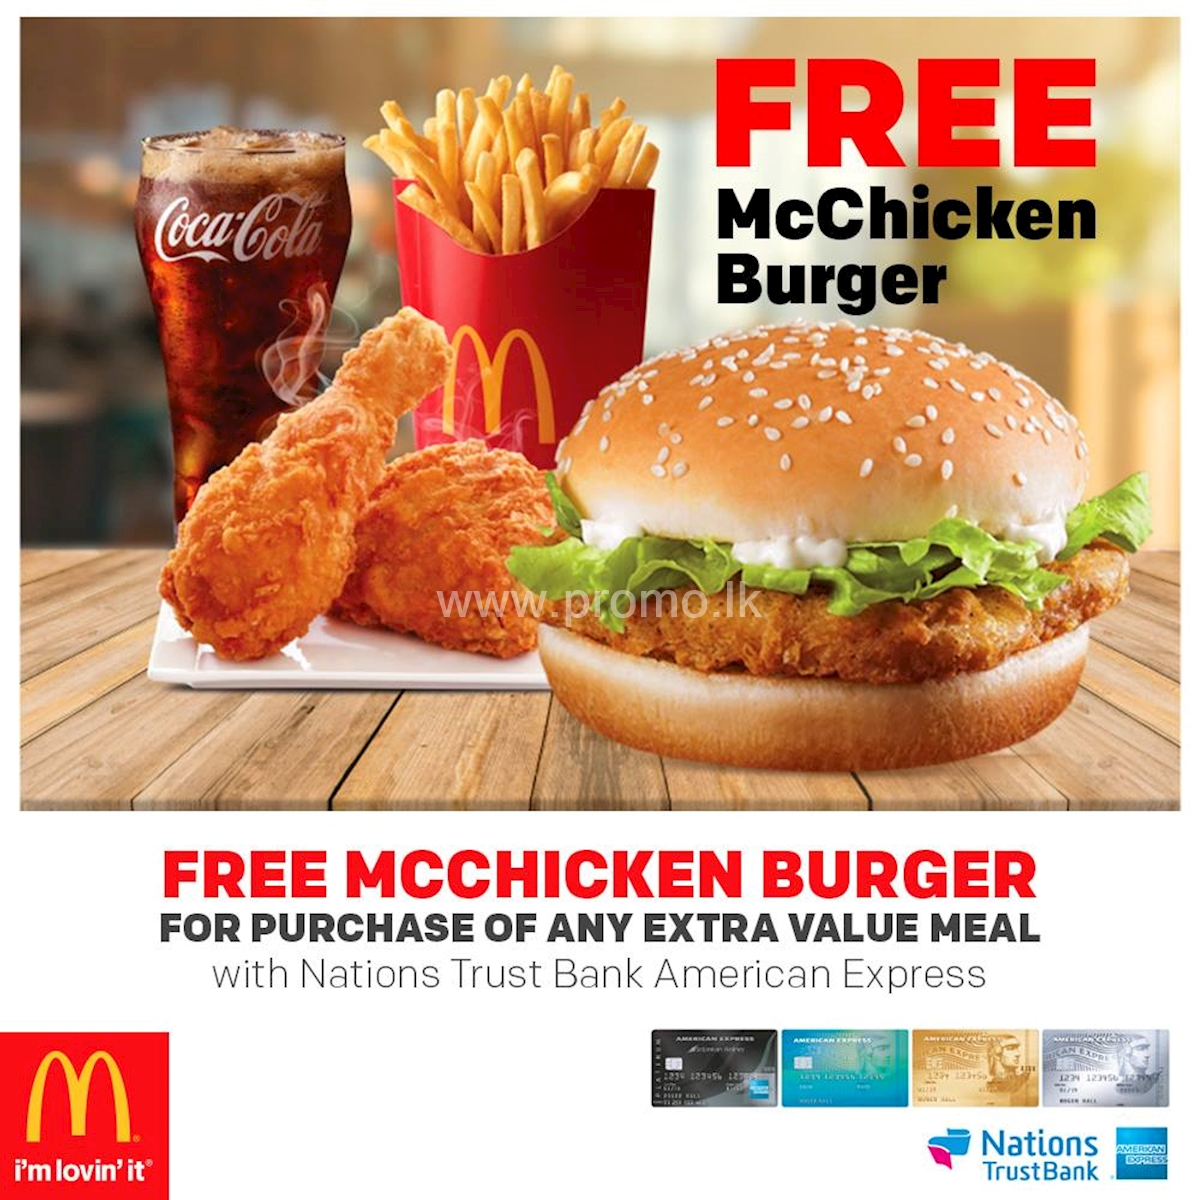 Free McChicken Burger for Nations Trust Bank American Express Cardholders